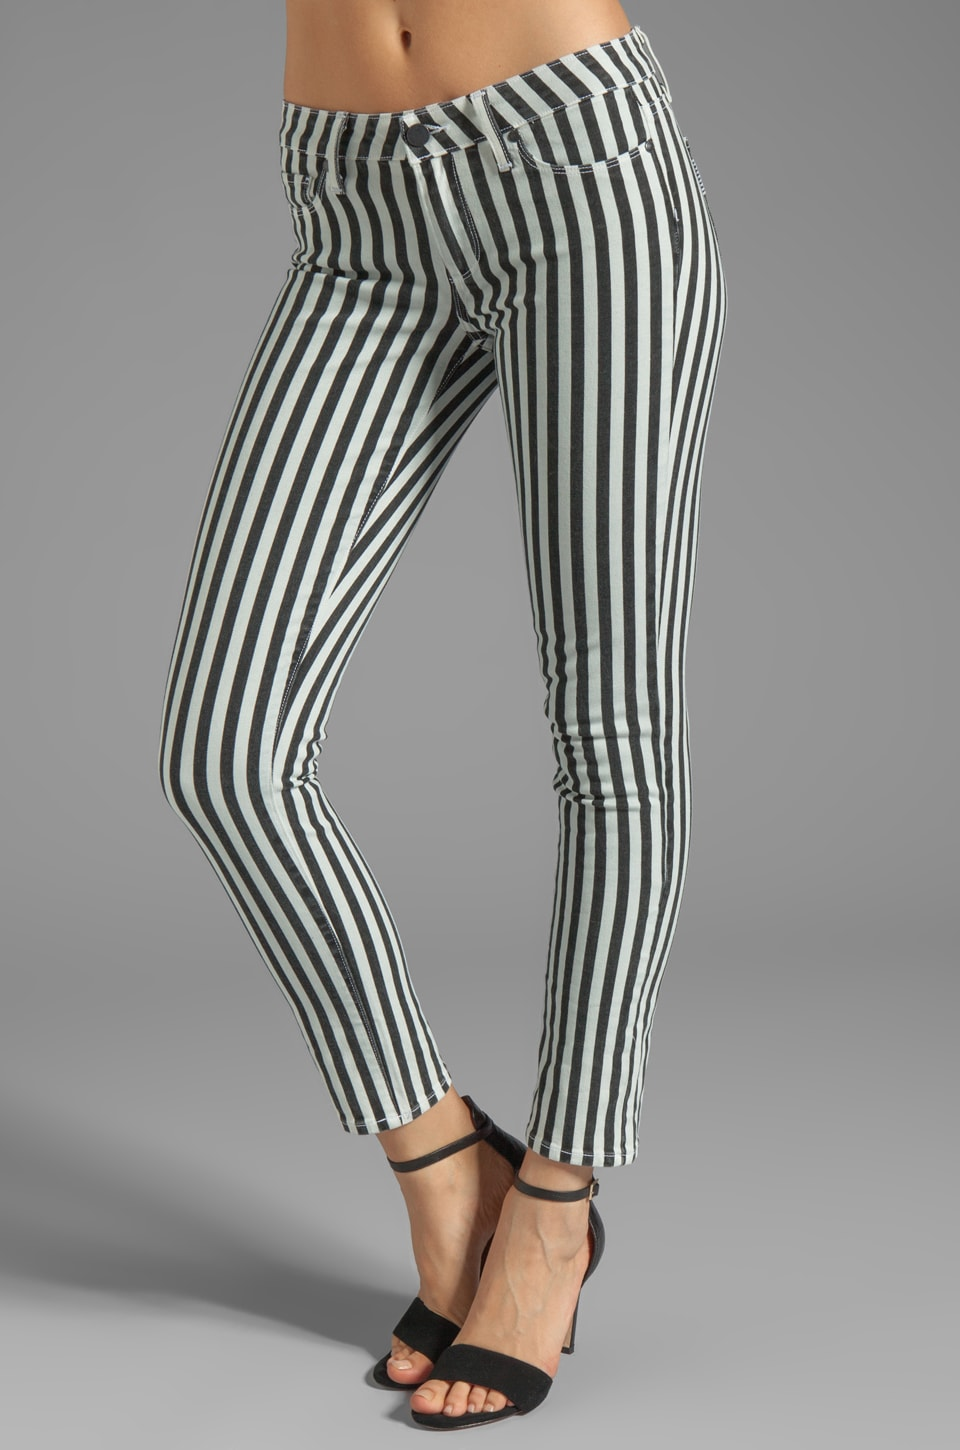 PAIGE Denim Skyline Ankle Peg Jean London Stripe in Black and White